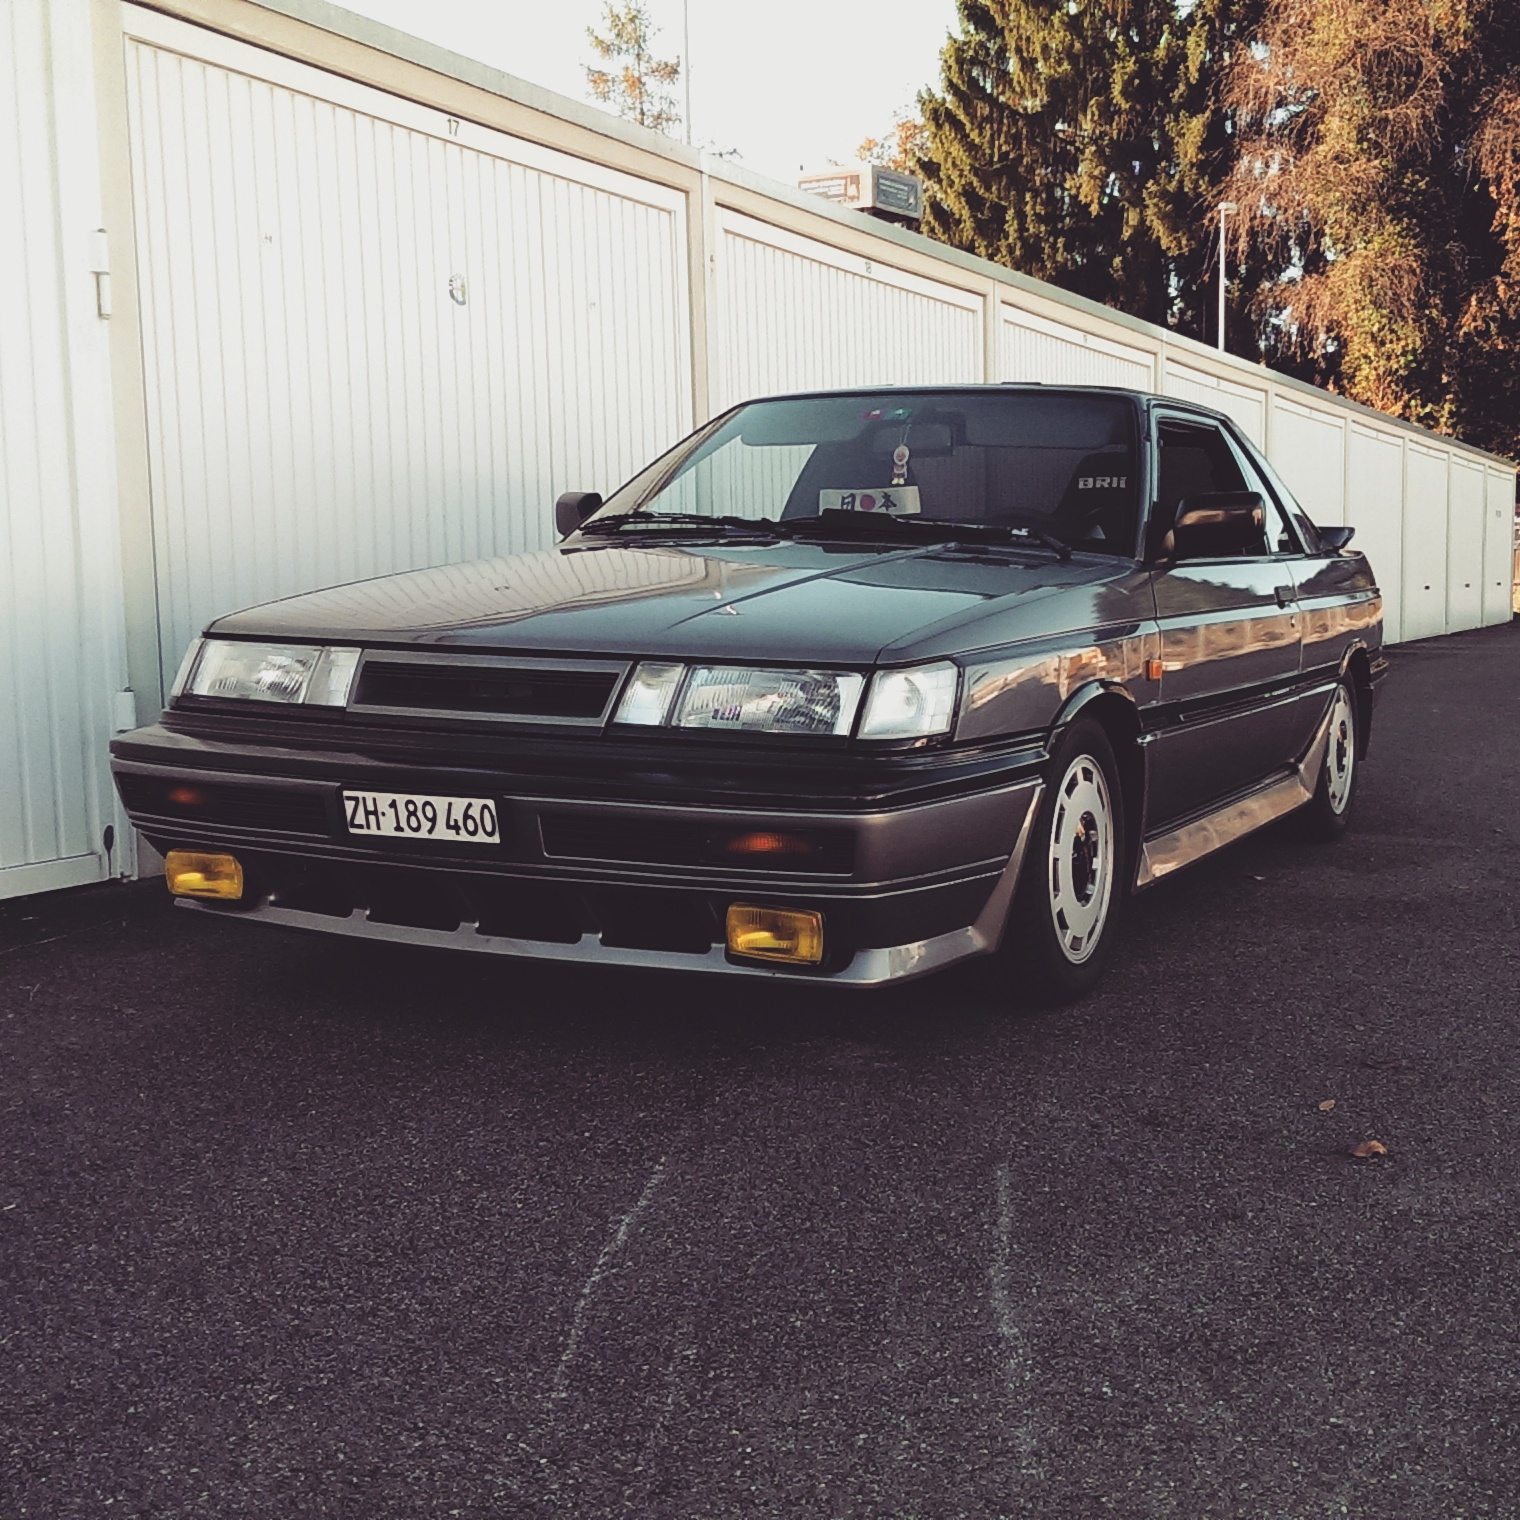 I Want To Know If There Are Other Nissan Sunny Coupe Owners In Here D The Car Had Different Names In The Countries It Was Sold So Some People Might Know It